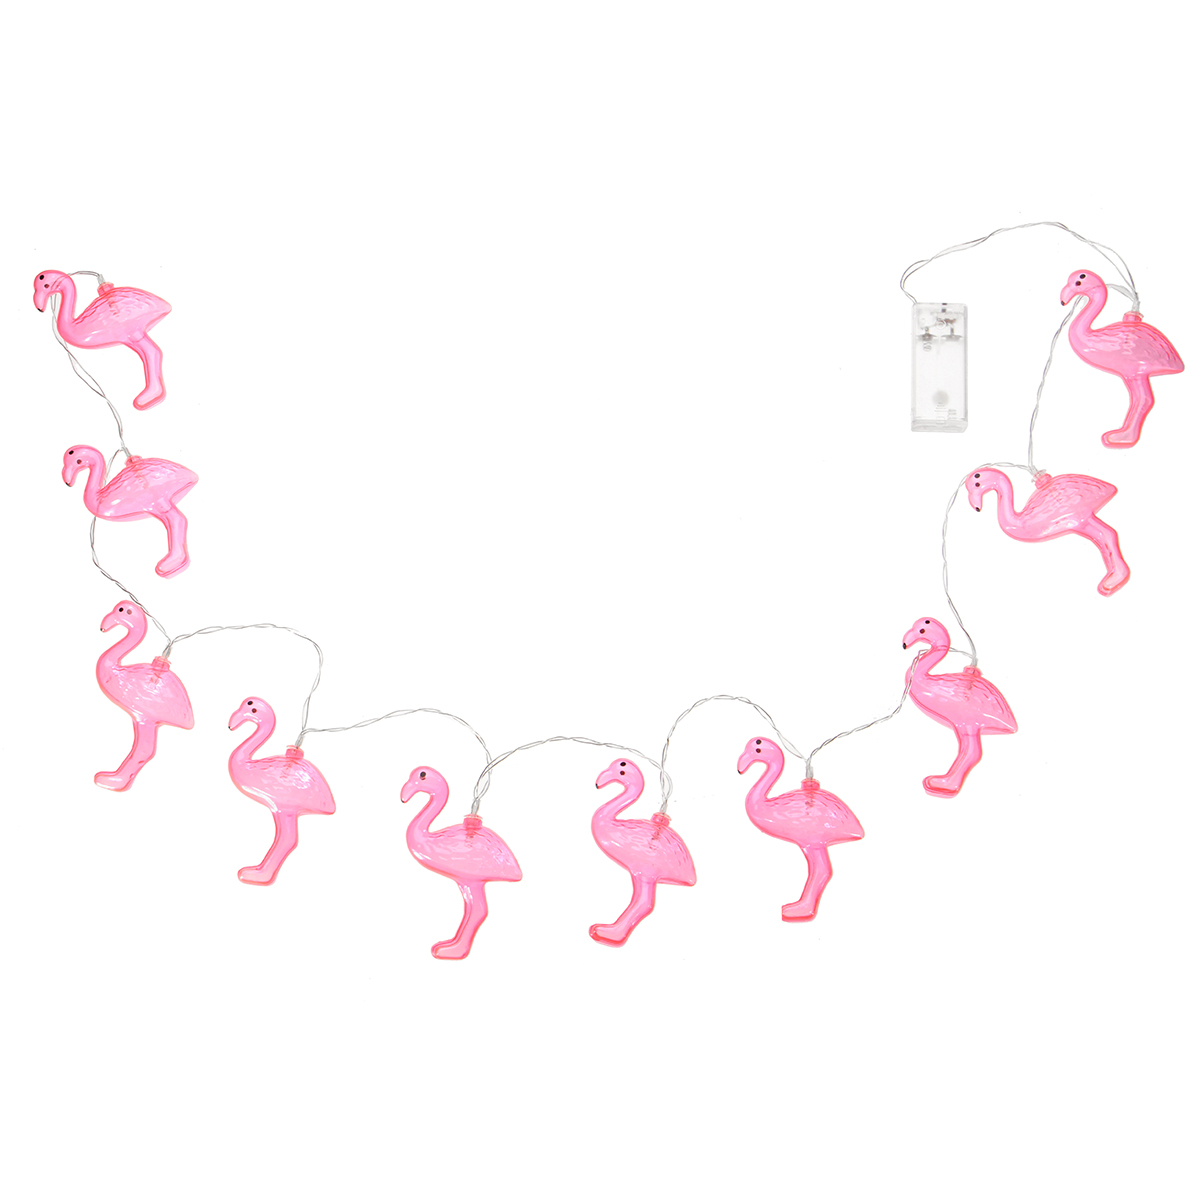 Battery powered 10LEDs Flamingo Novety Warm White Pink Fairy String Light for Christmas Party